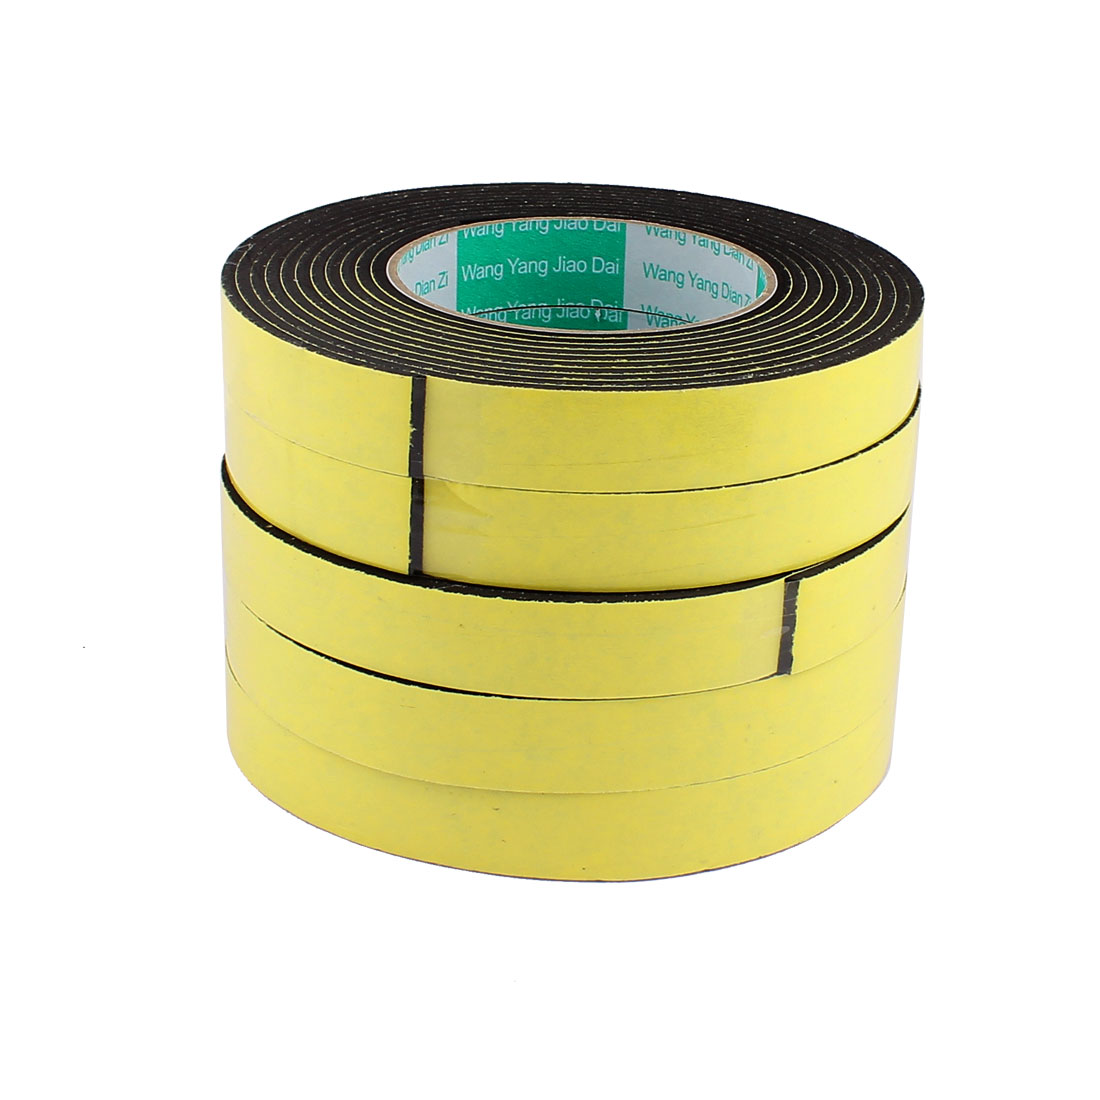 5 Pcs 2CM Width 4M Length 3MM Thick Single Sided Sealing Shockproof Sponge Tape